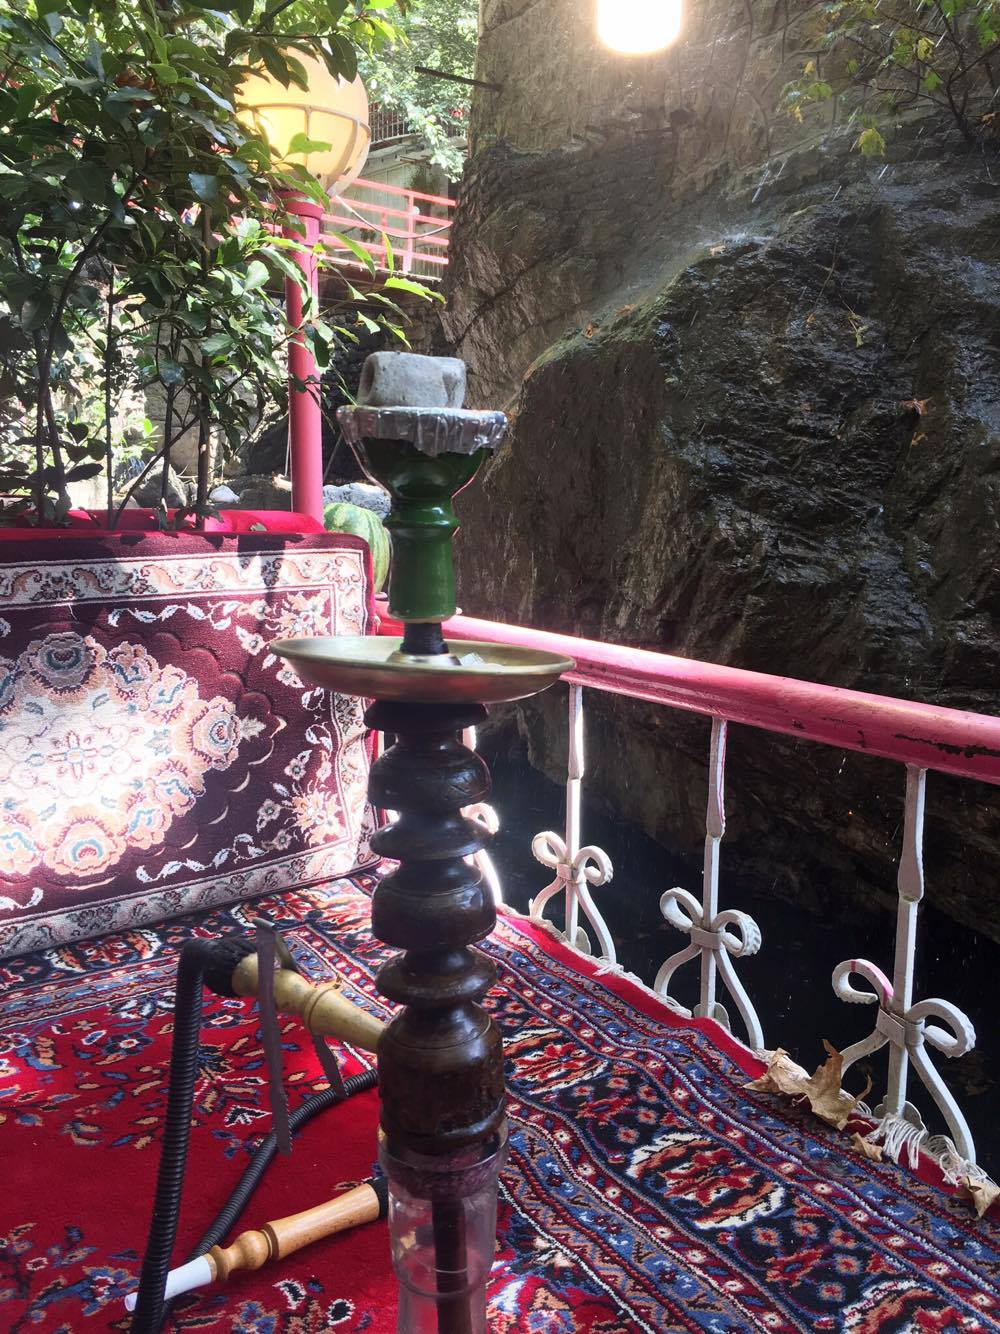 Smoking hookah somewhere in the mountains in Tehran.